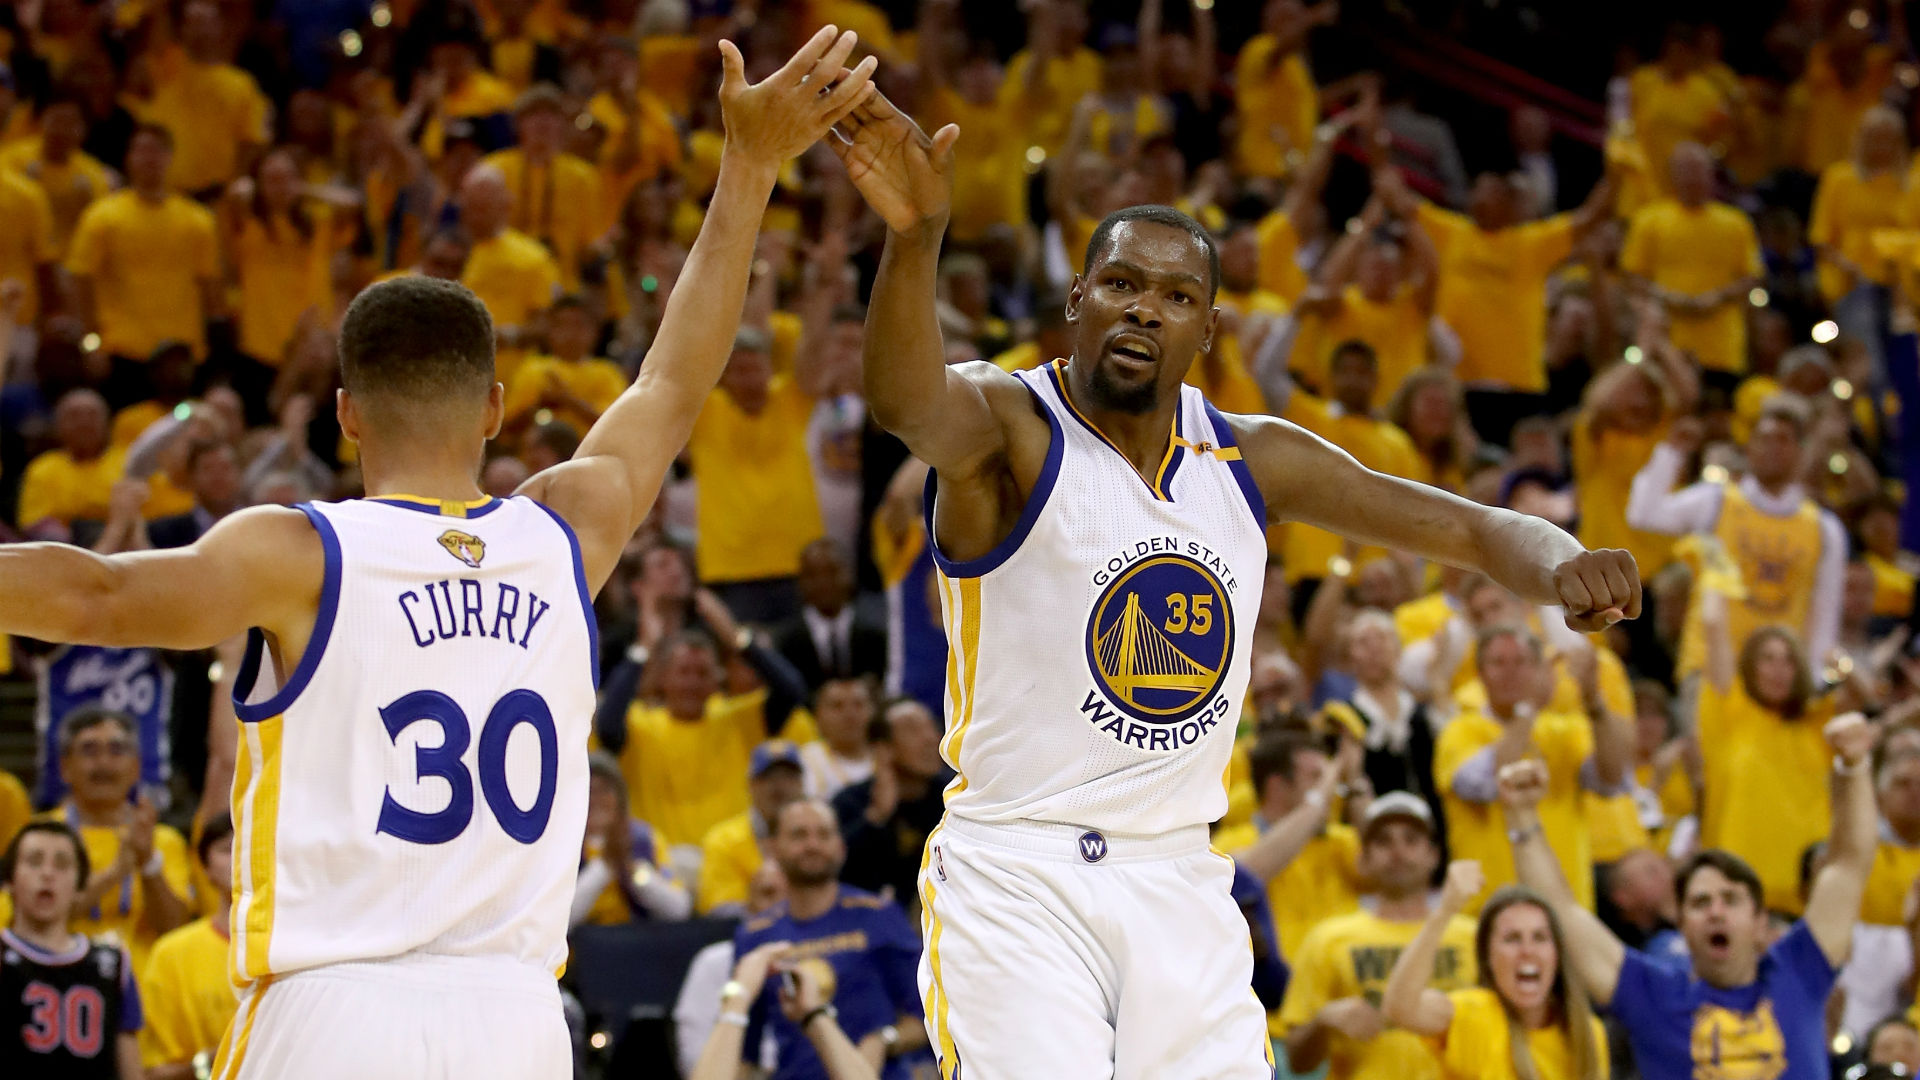 Stephen-curry-kevin-durant-cropped_w8oorv4soi1m1jde0wtfh5h3e